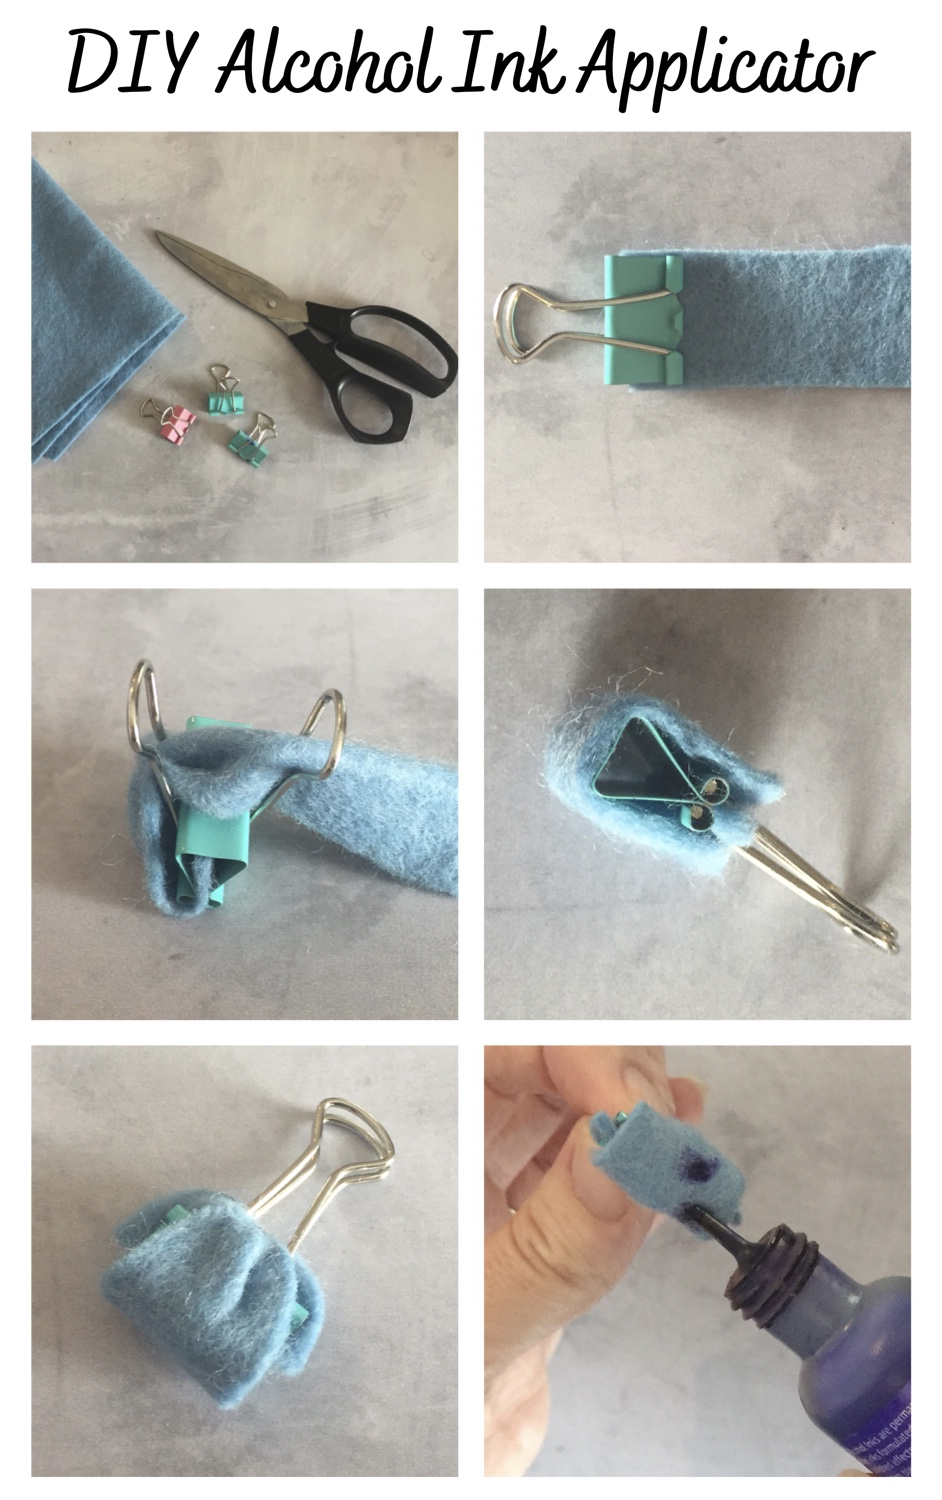 How to make an alcohol ink applicator